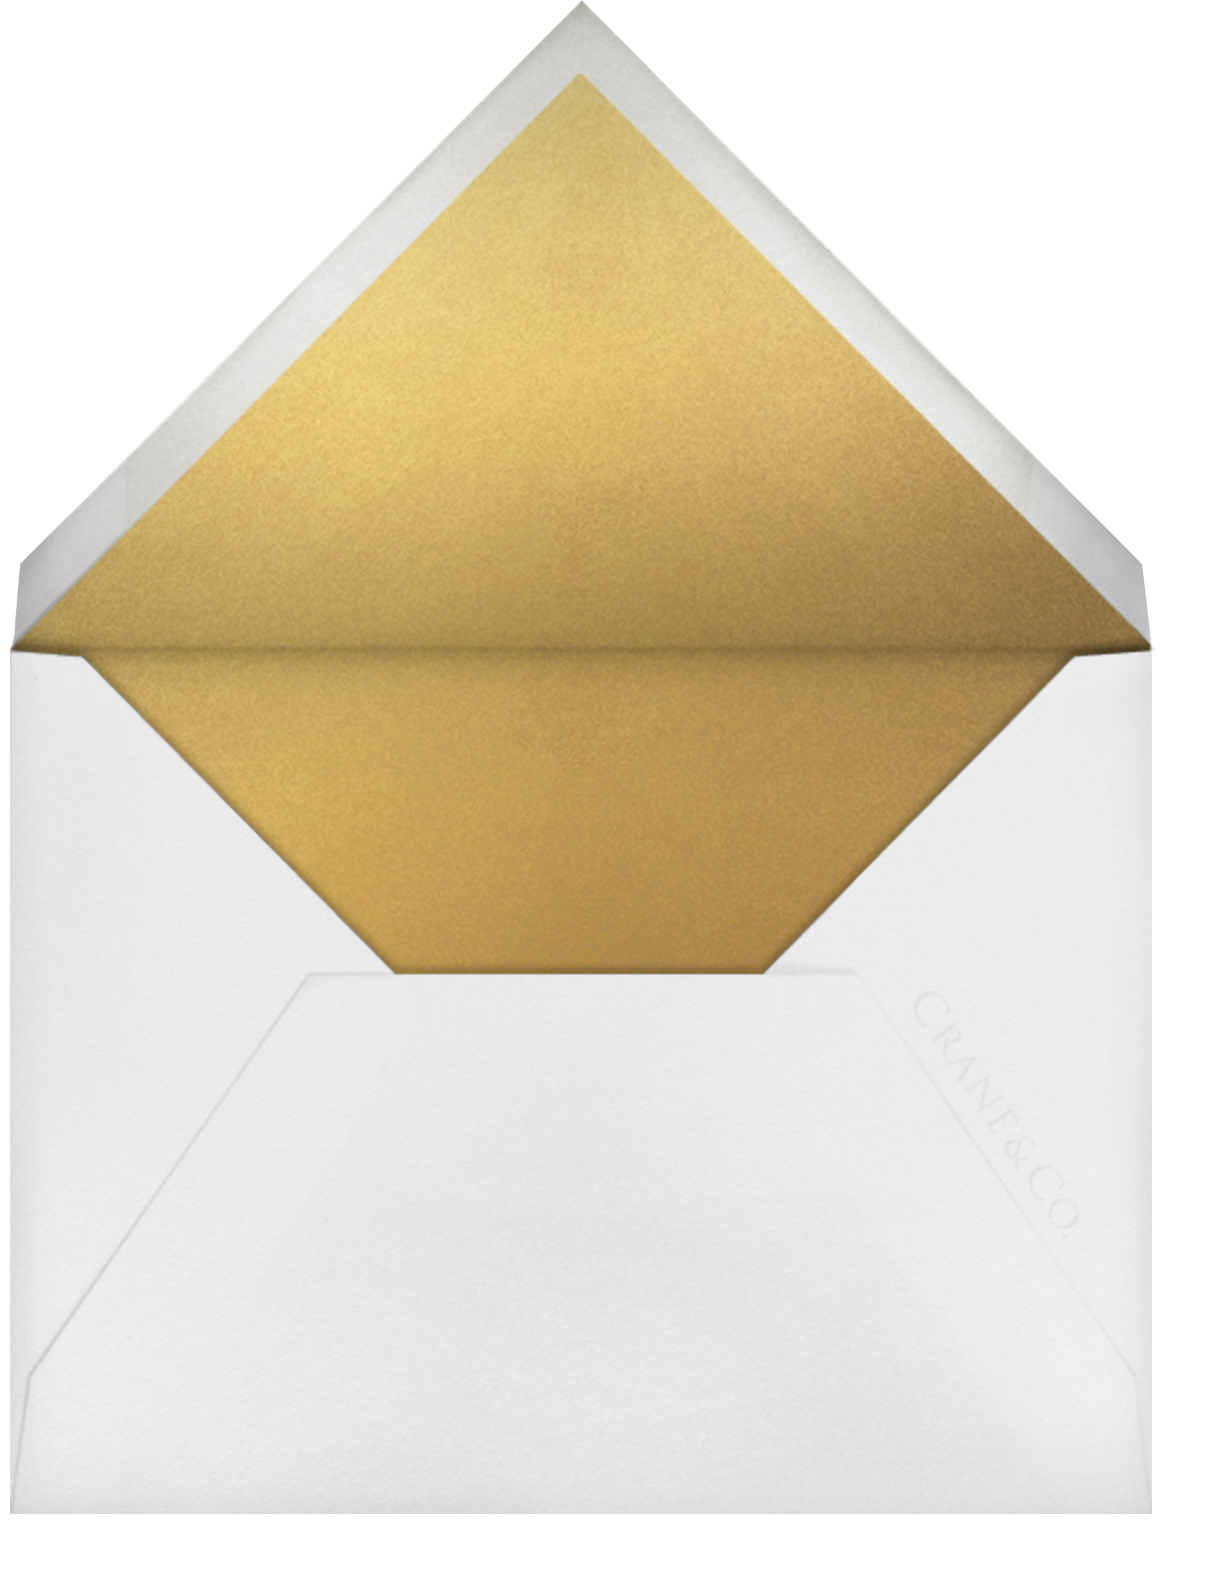 Whitby - Medium Gold - Paperless Post - All - envelope back